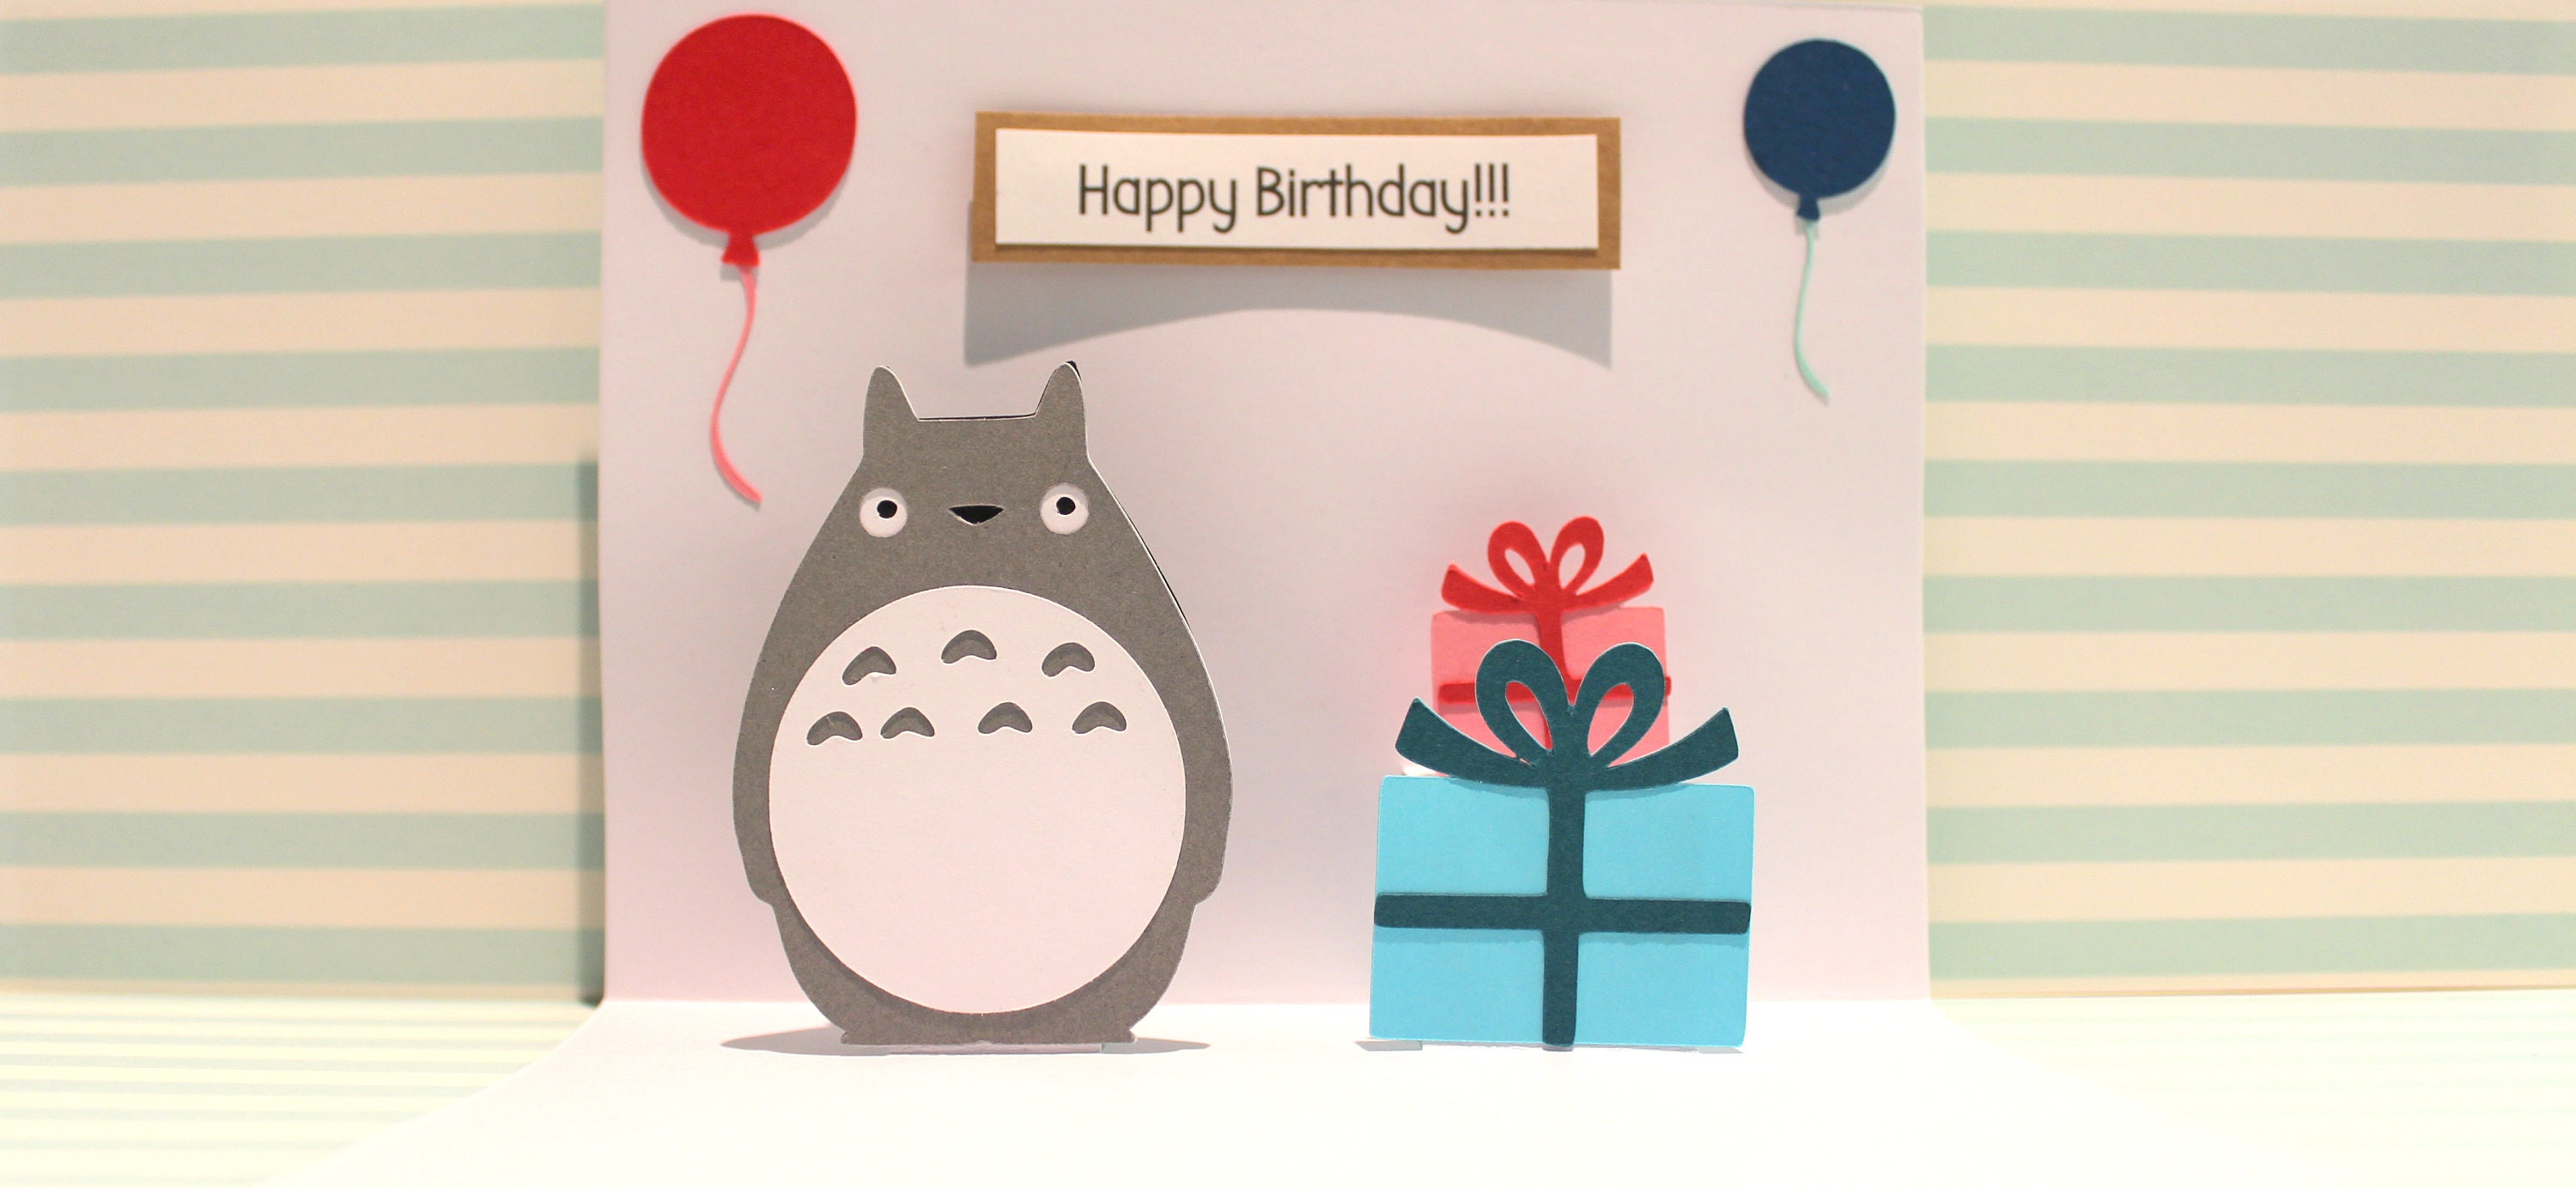 Totoro Card Pop Up Card Totoro Birthday Card – Totoro Birthday Card